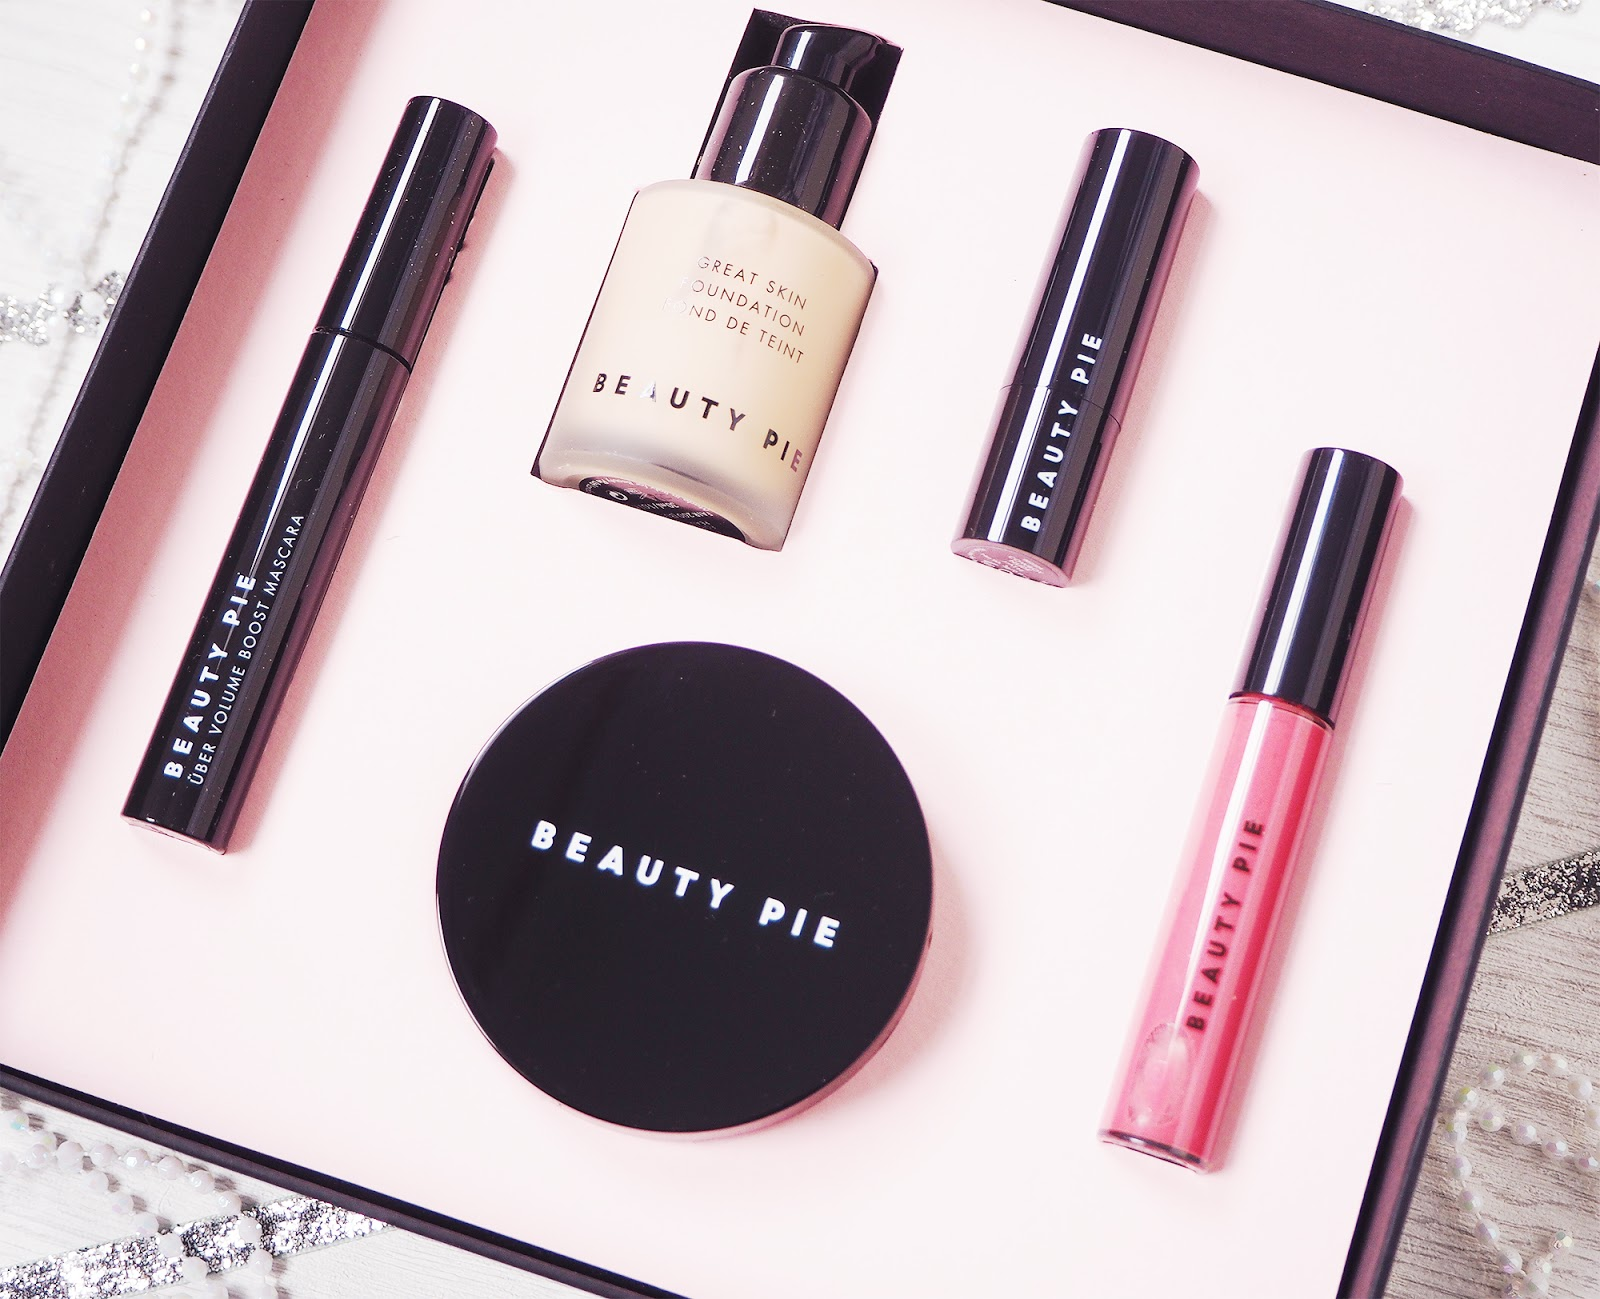 Beauty Pie budget friendly makeup subscription review